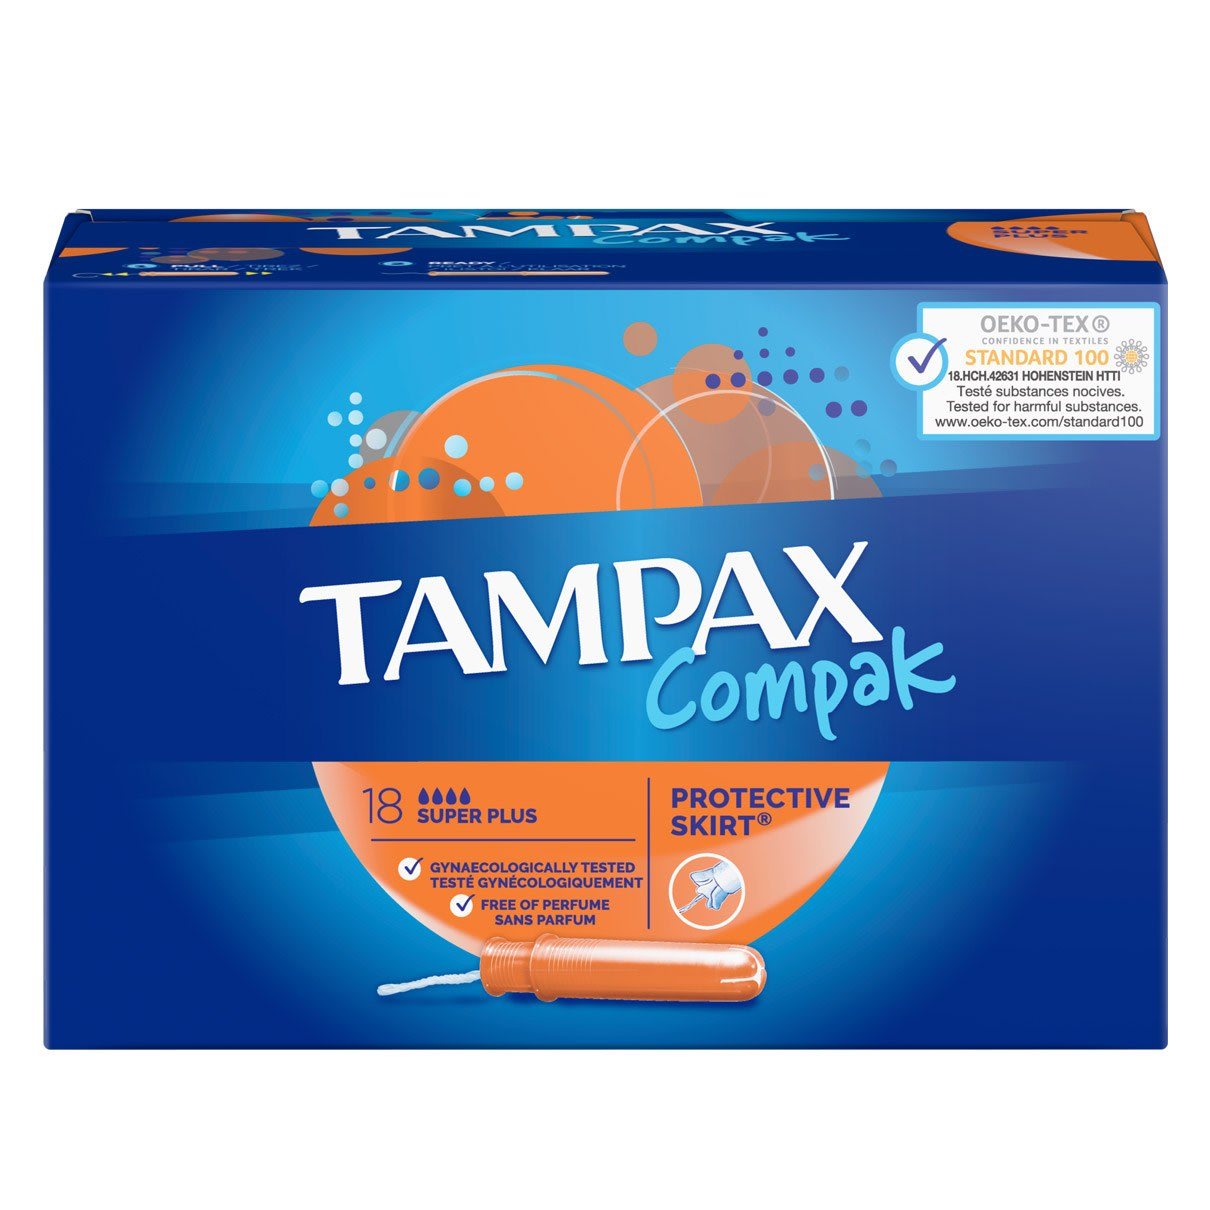 TAMPAX_Compak_Super_Plus_Tampon_Menstruation_Sl07